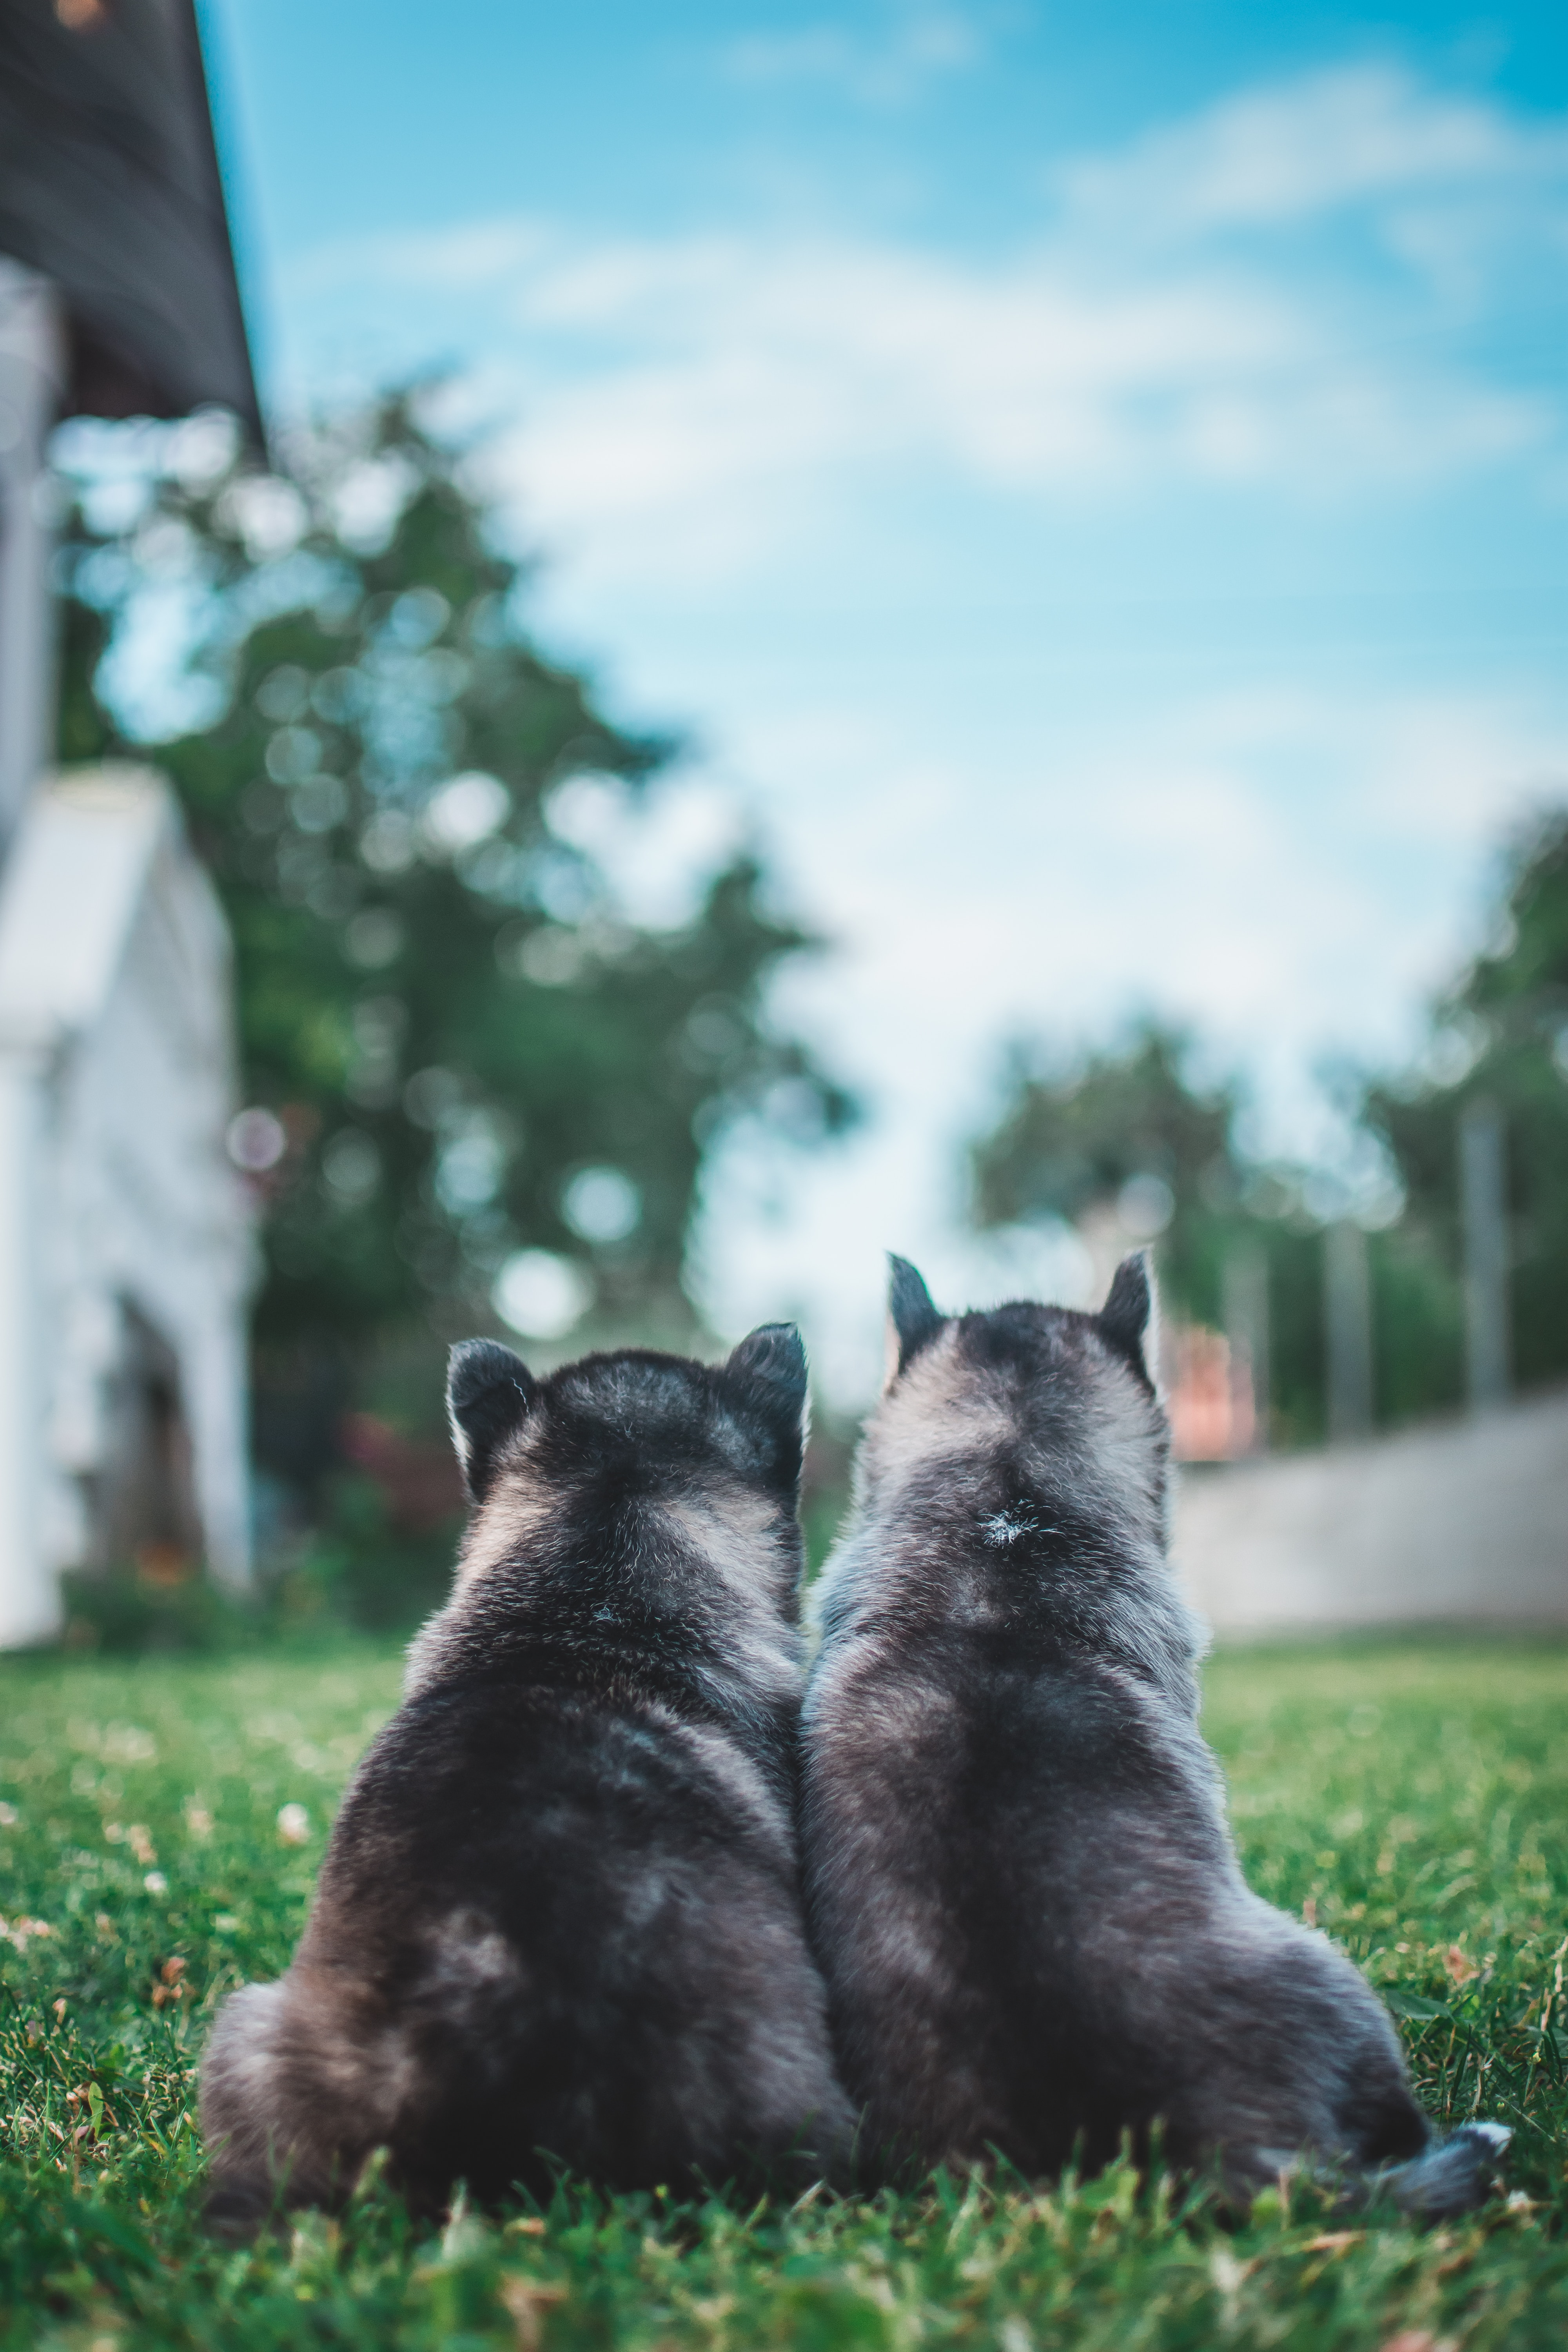 132542 download wallpaper Animals, Puppies, Dogs, Grass, Lawn screensavers and pictures for free